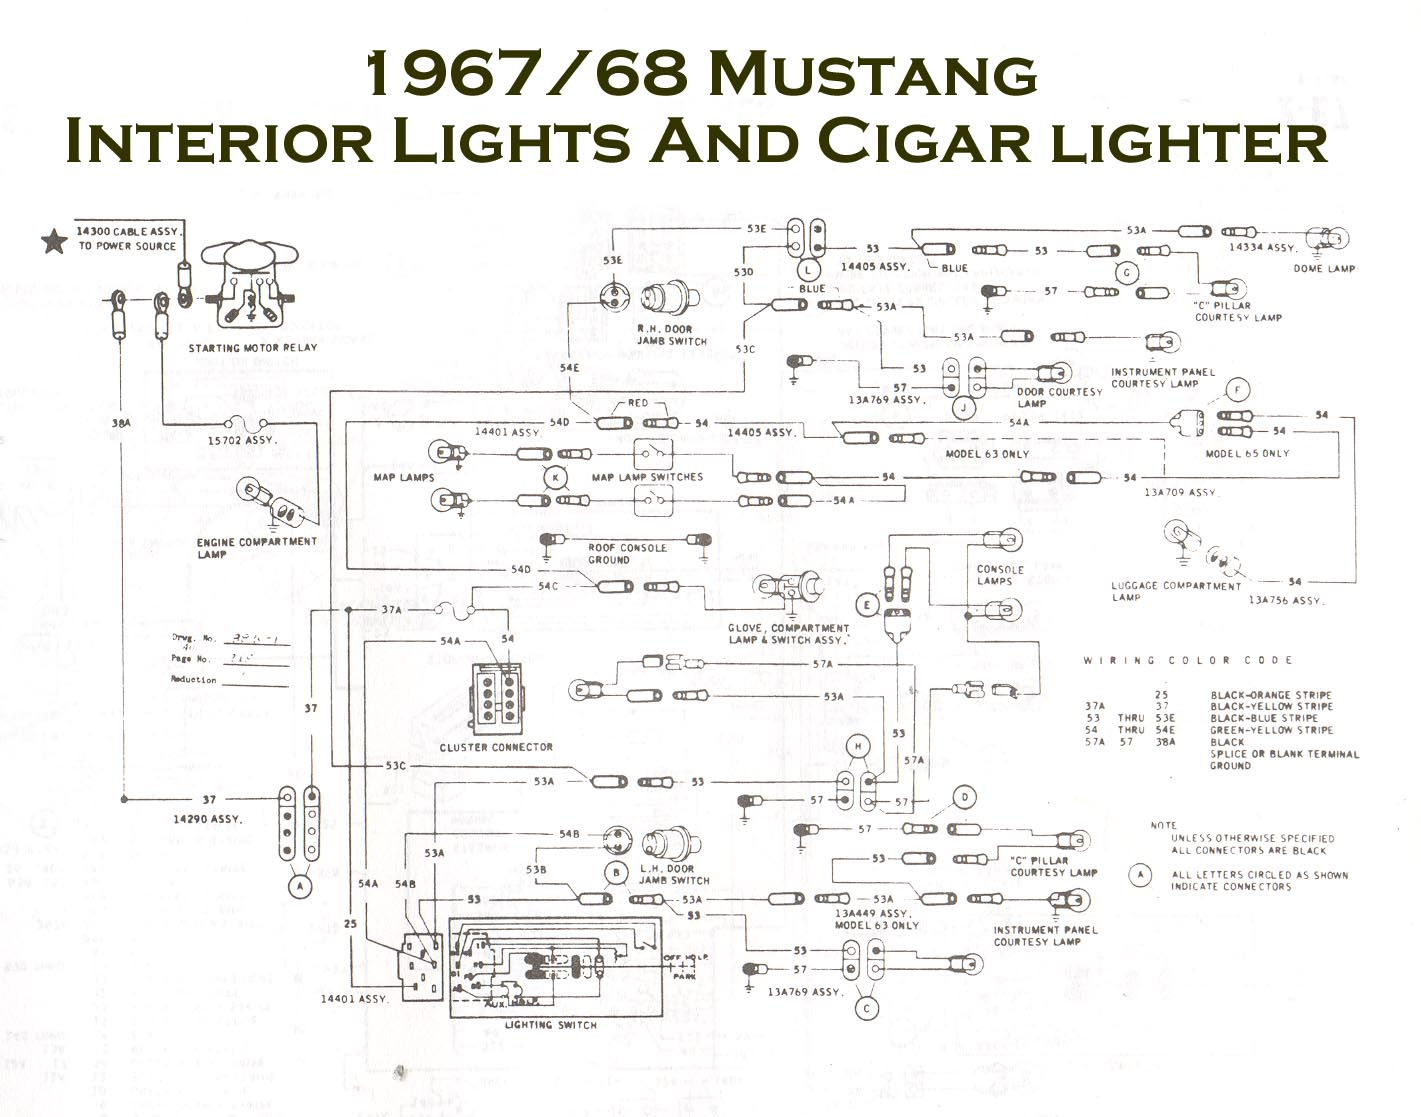 1967 68_console_wiring_diagram vintage mustang wiring diagrams 68 mustang headlight wiring diagram at readyjetset.co